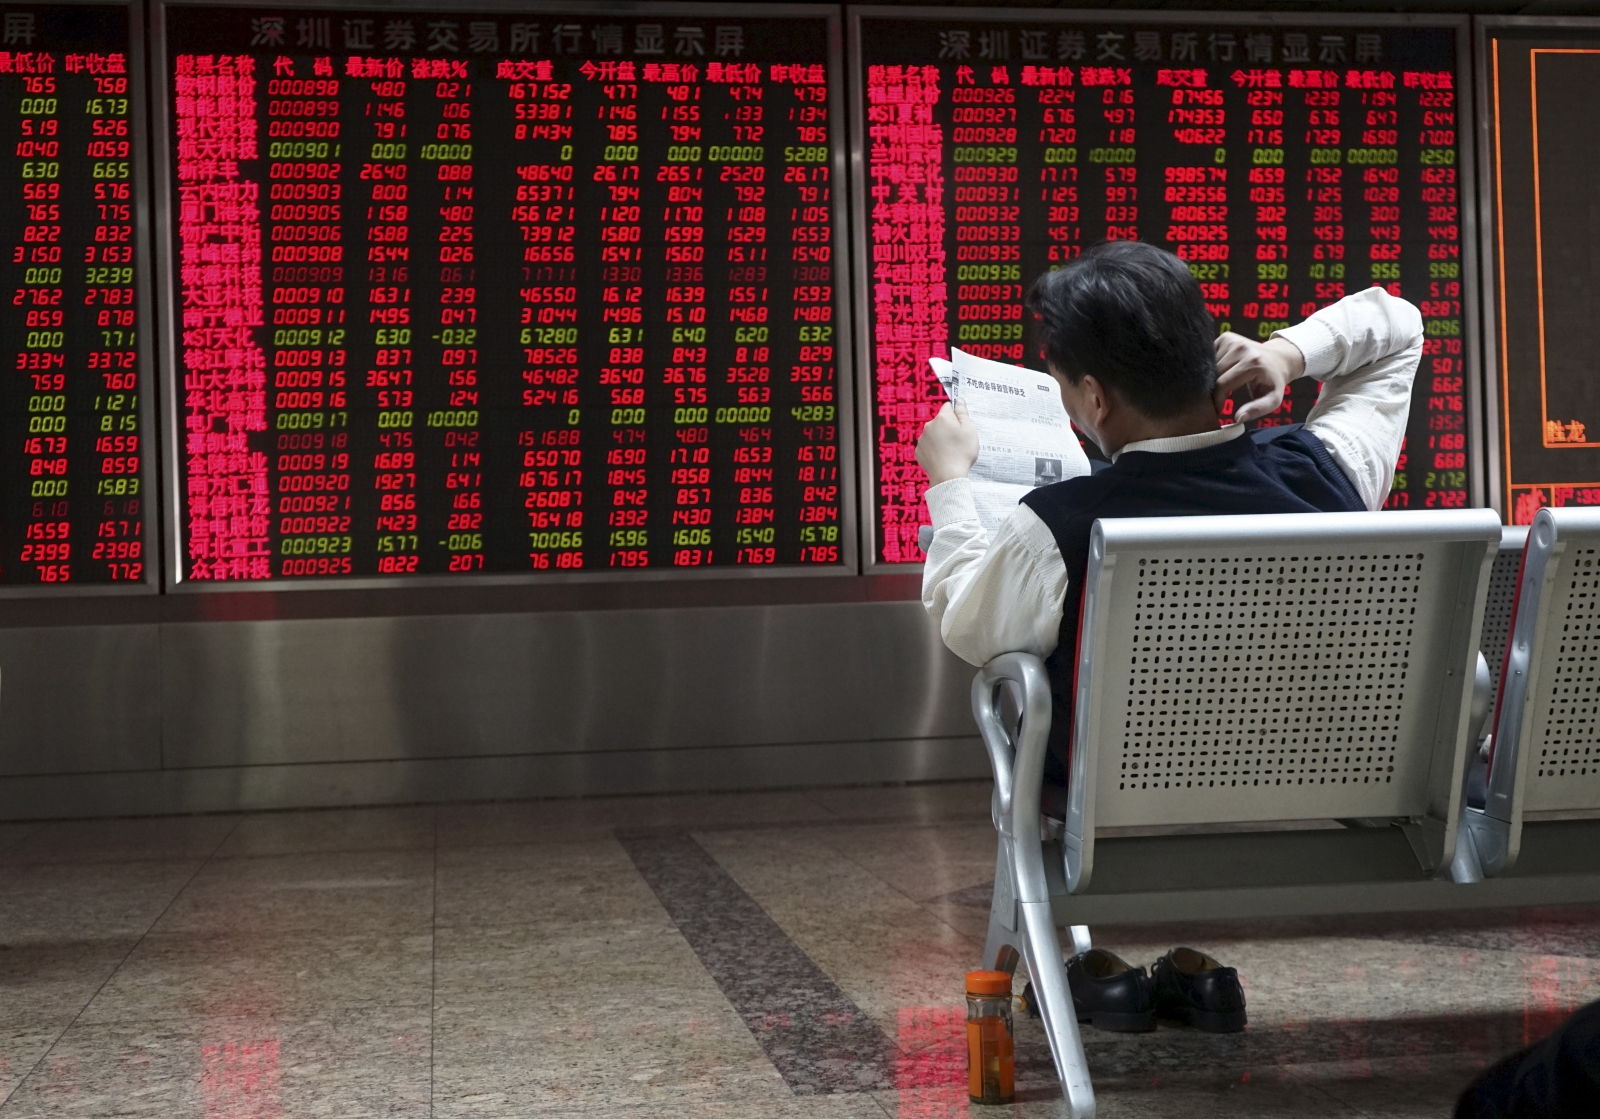 Asian markets: Shanghai Composite slips ahead of the EU referendum vote